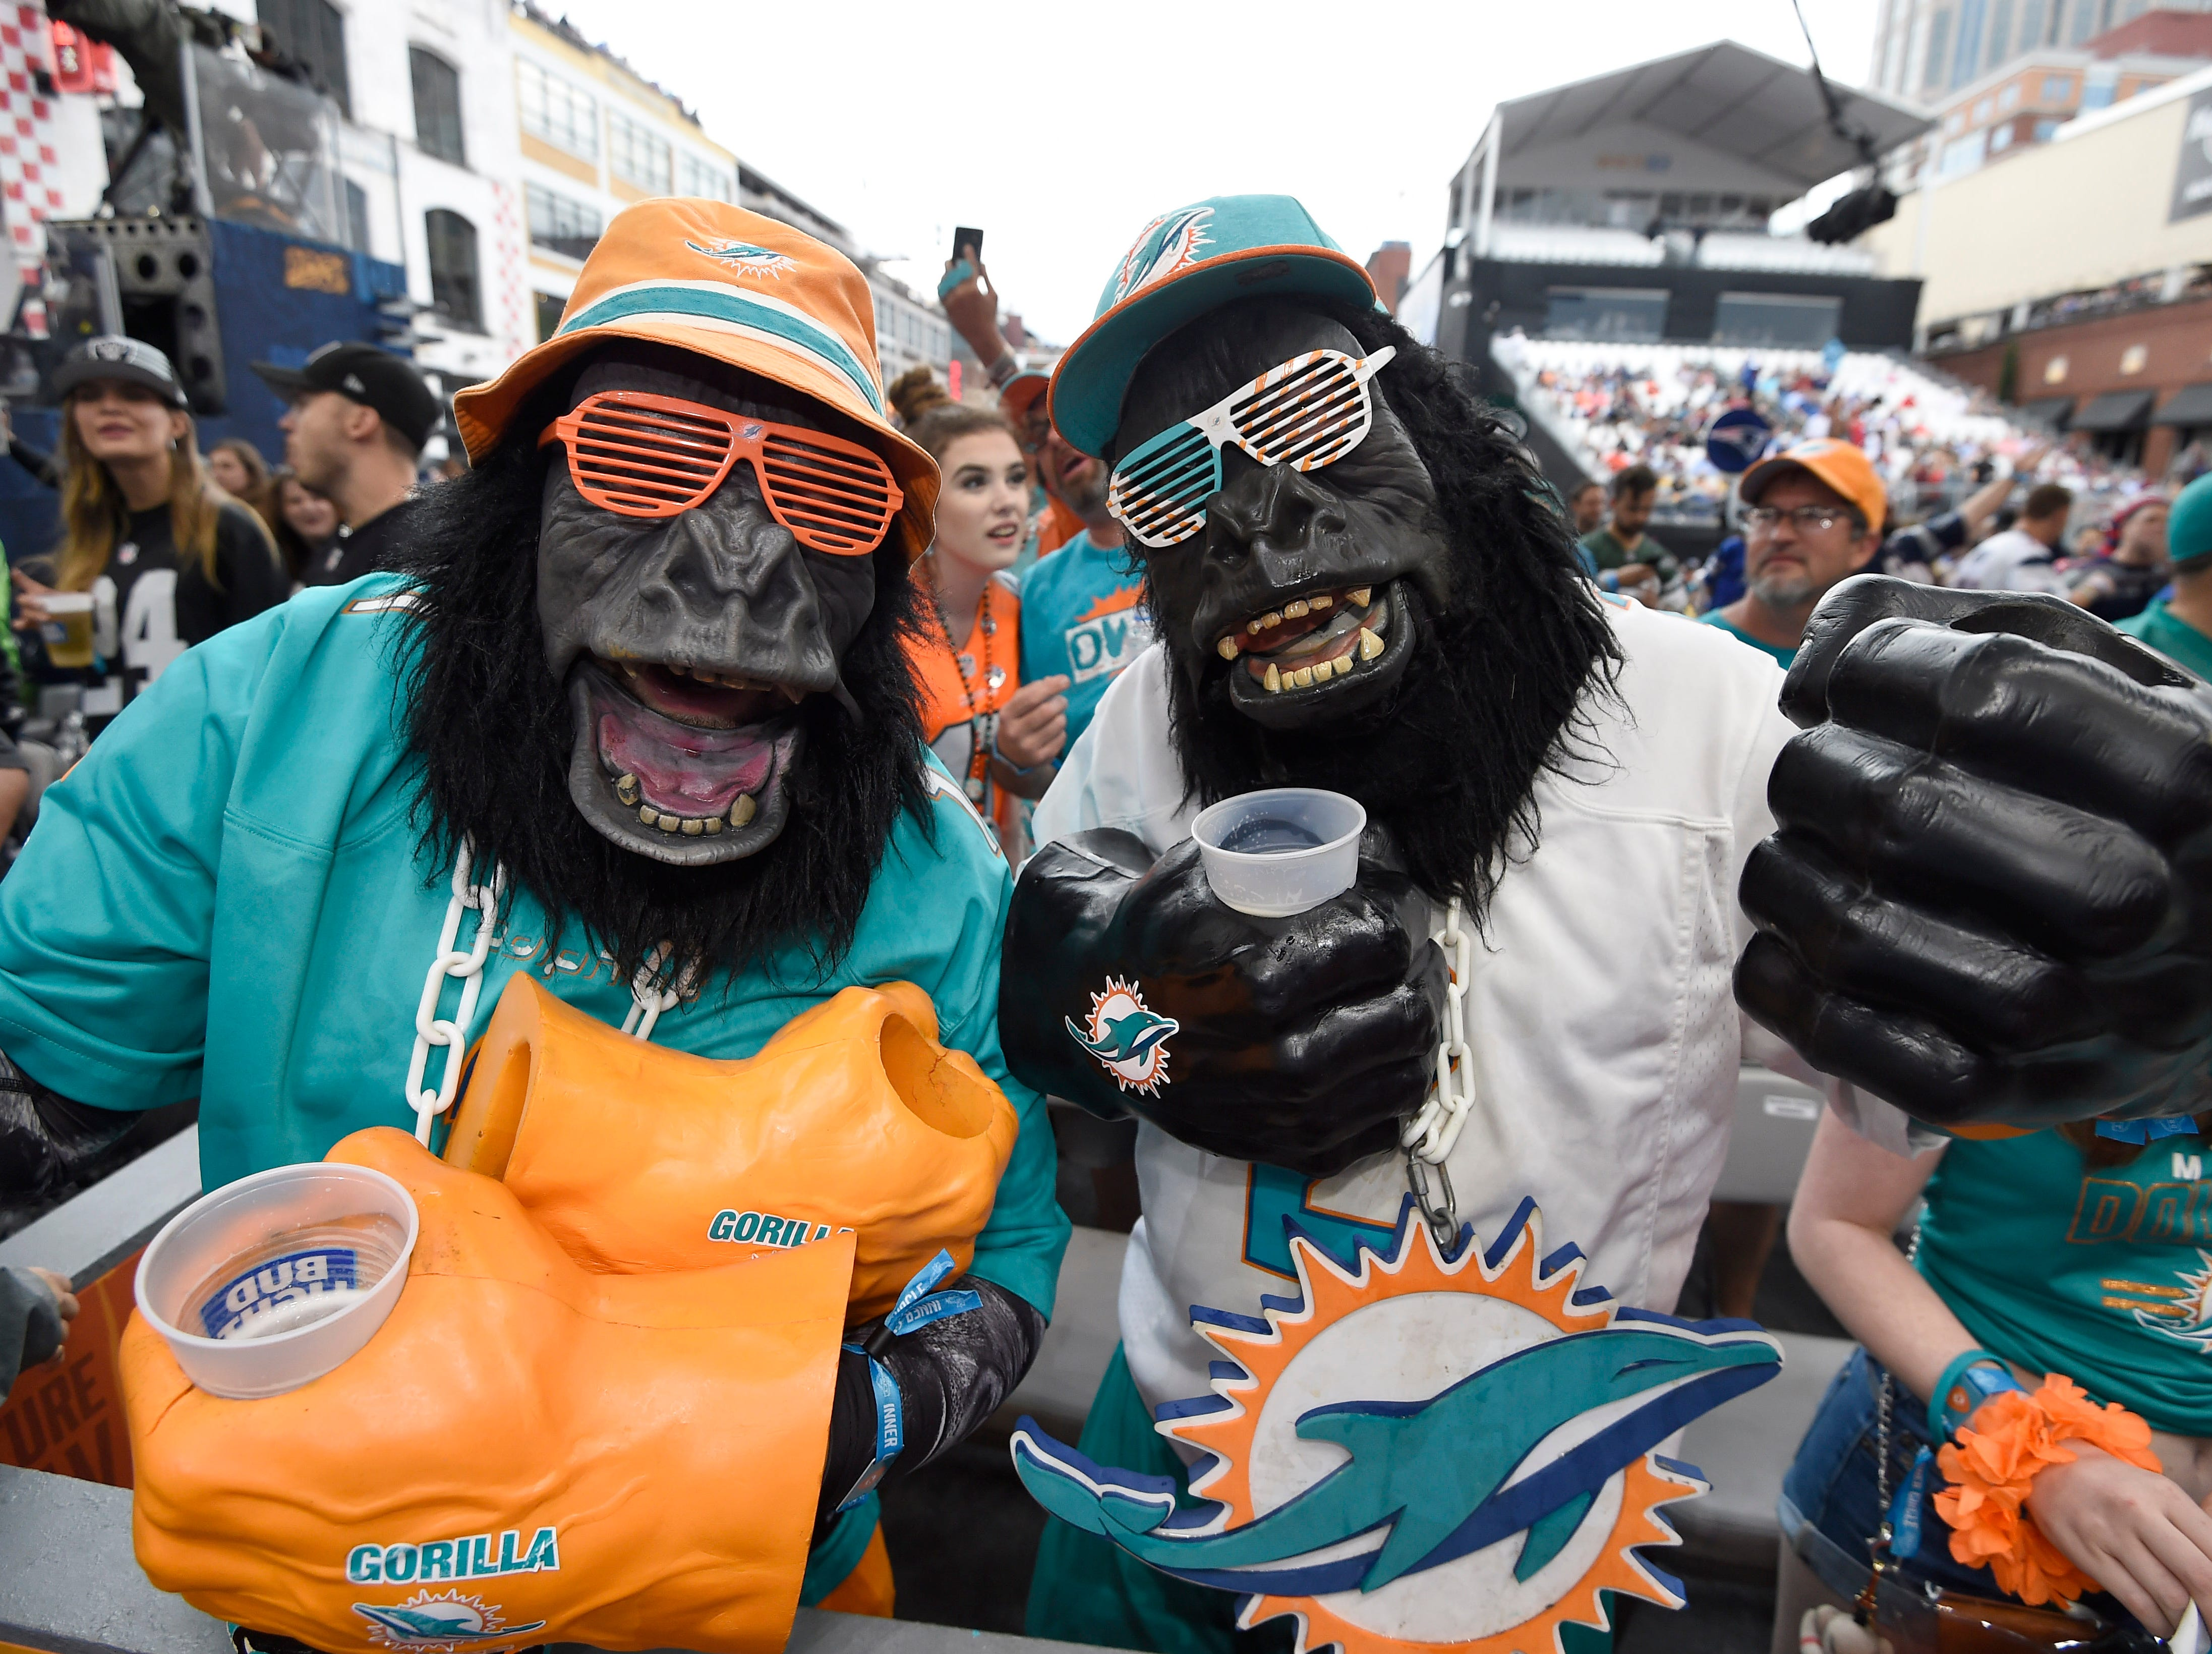 Dolphins fans listen to Moon Taxi perform before the first round of the NFL Draft Thursday, April 25, 2019, in Nashville, Tenn.